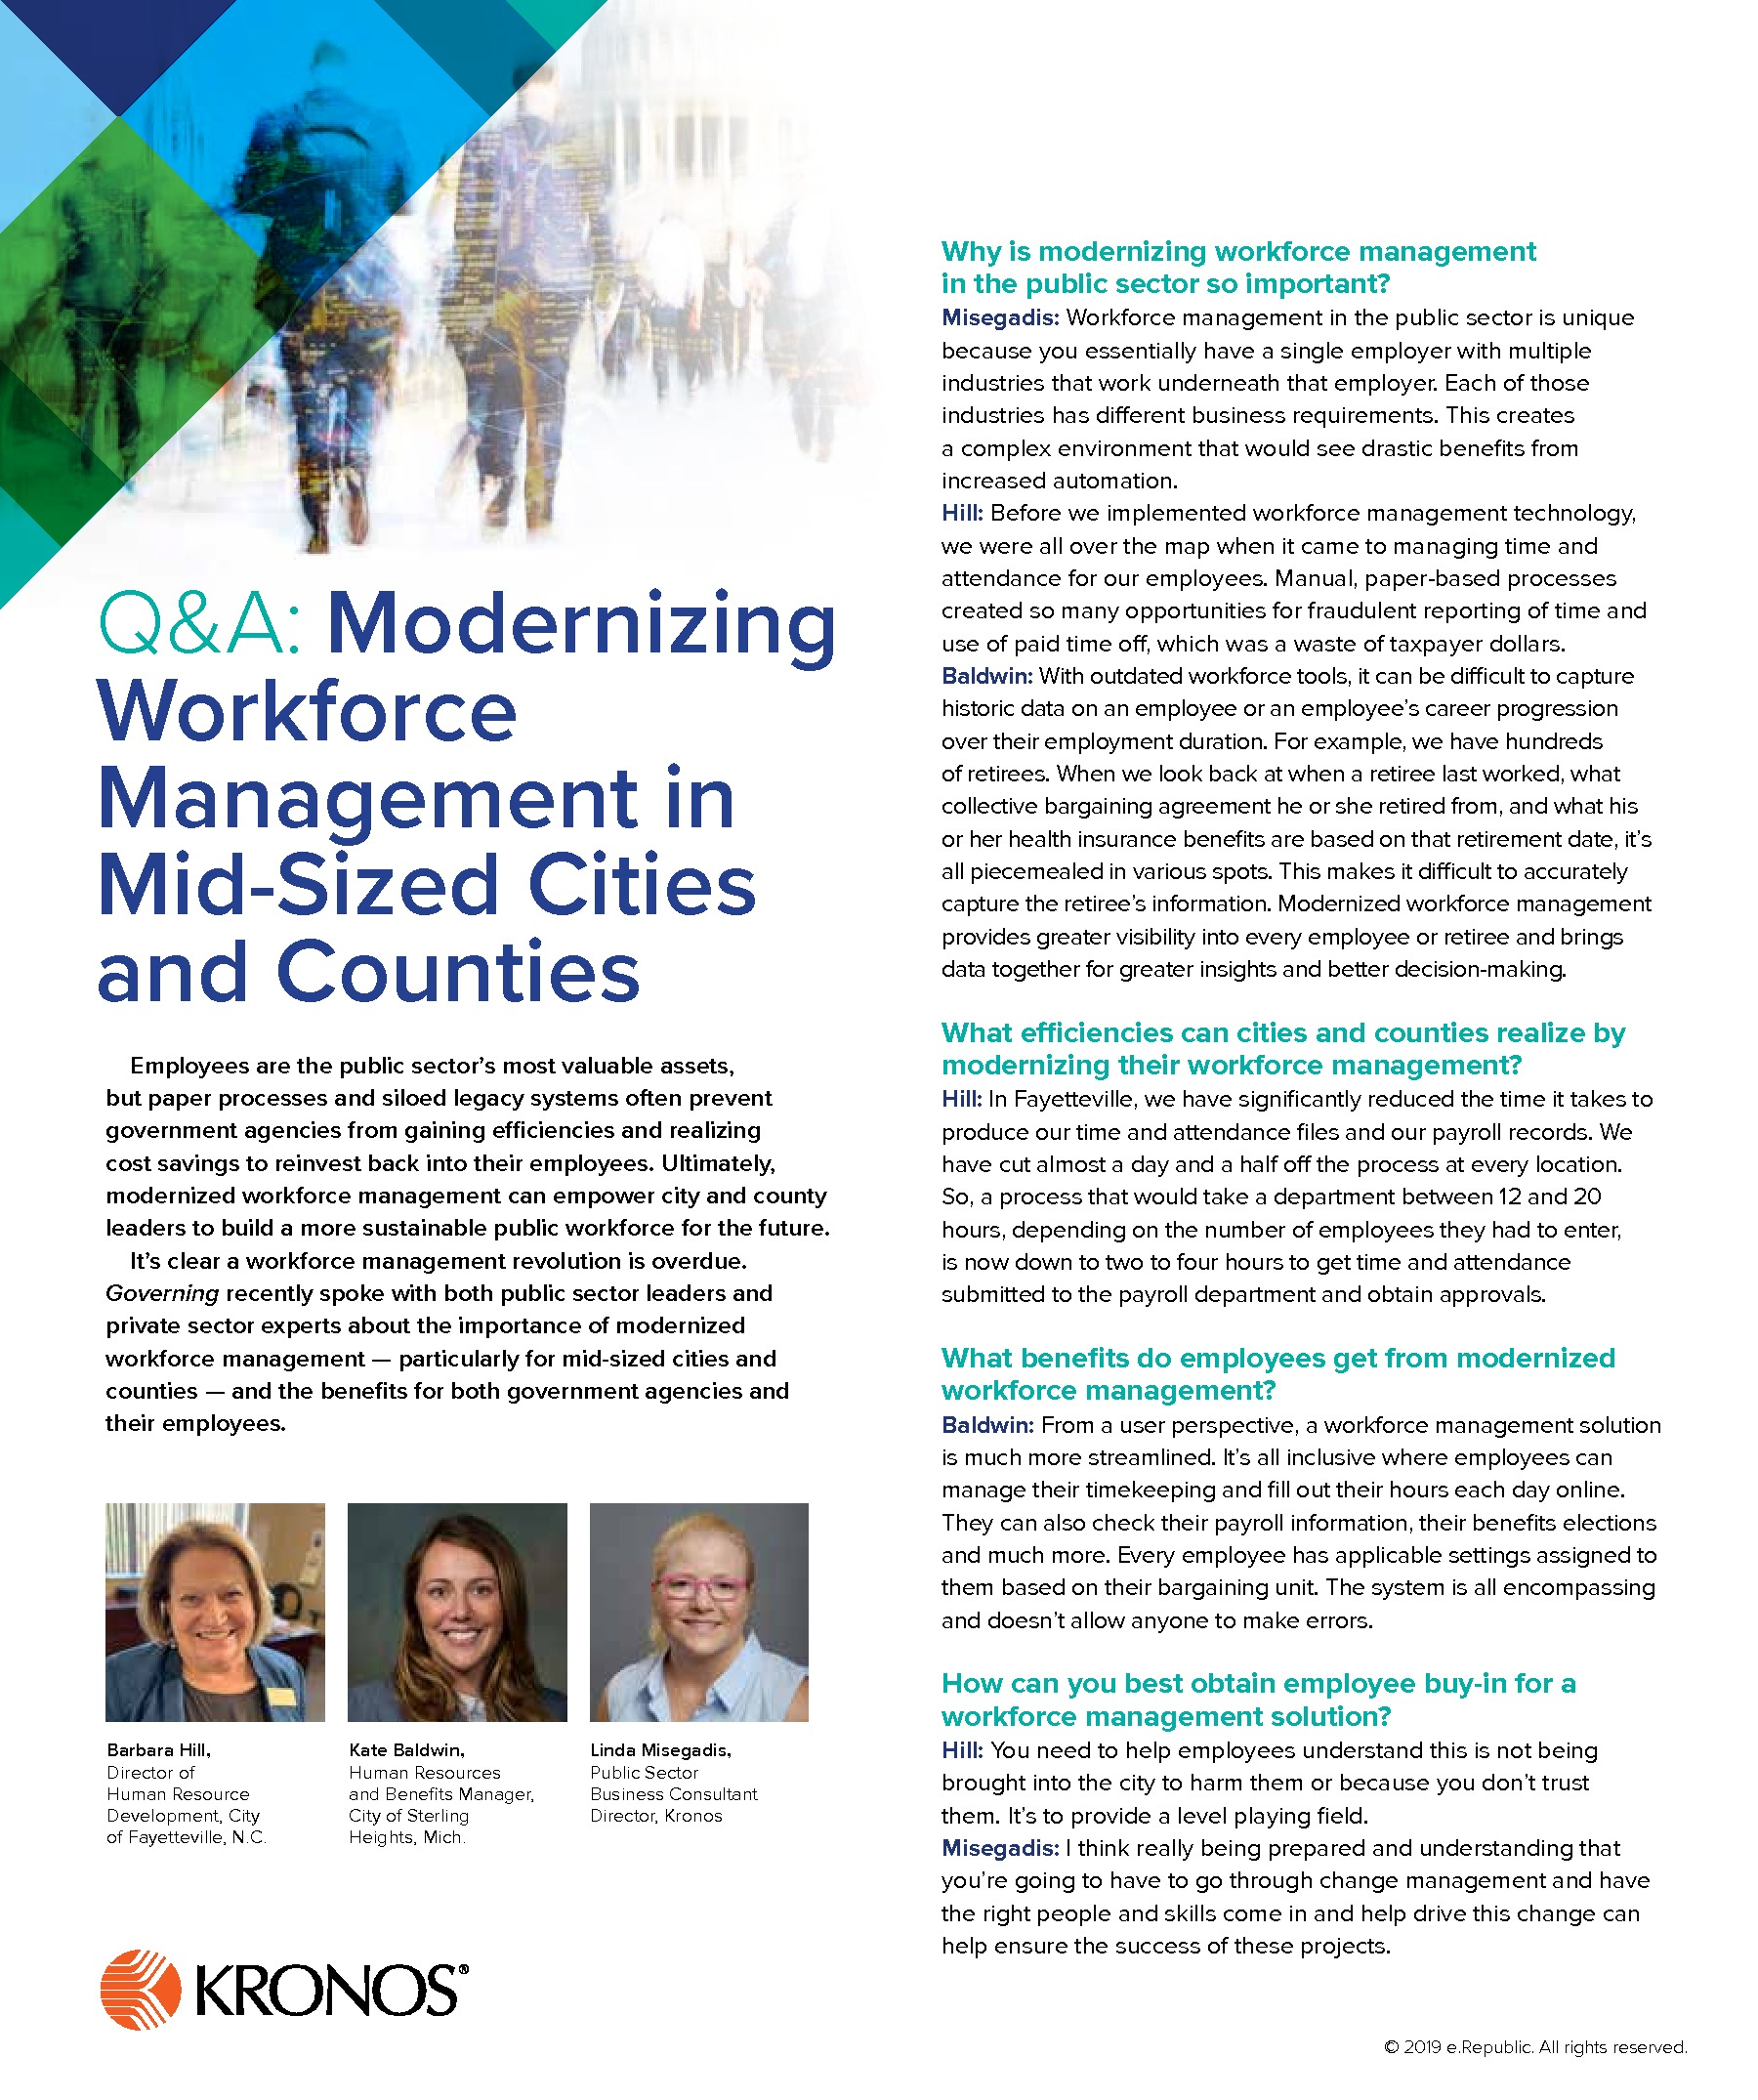 Q&A: Modernizing Workforce Management in Mid-Sized Cities and Counties